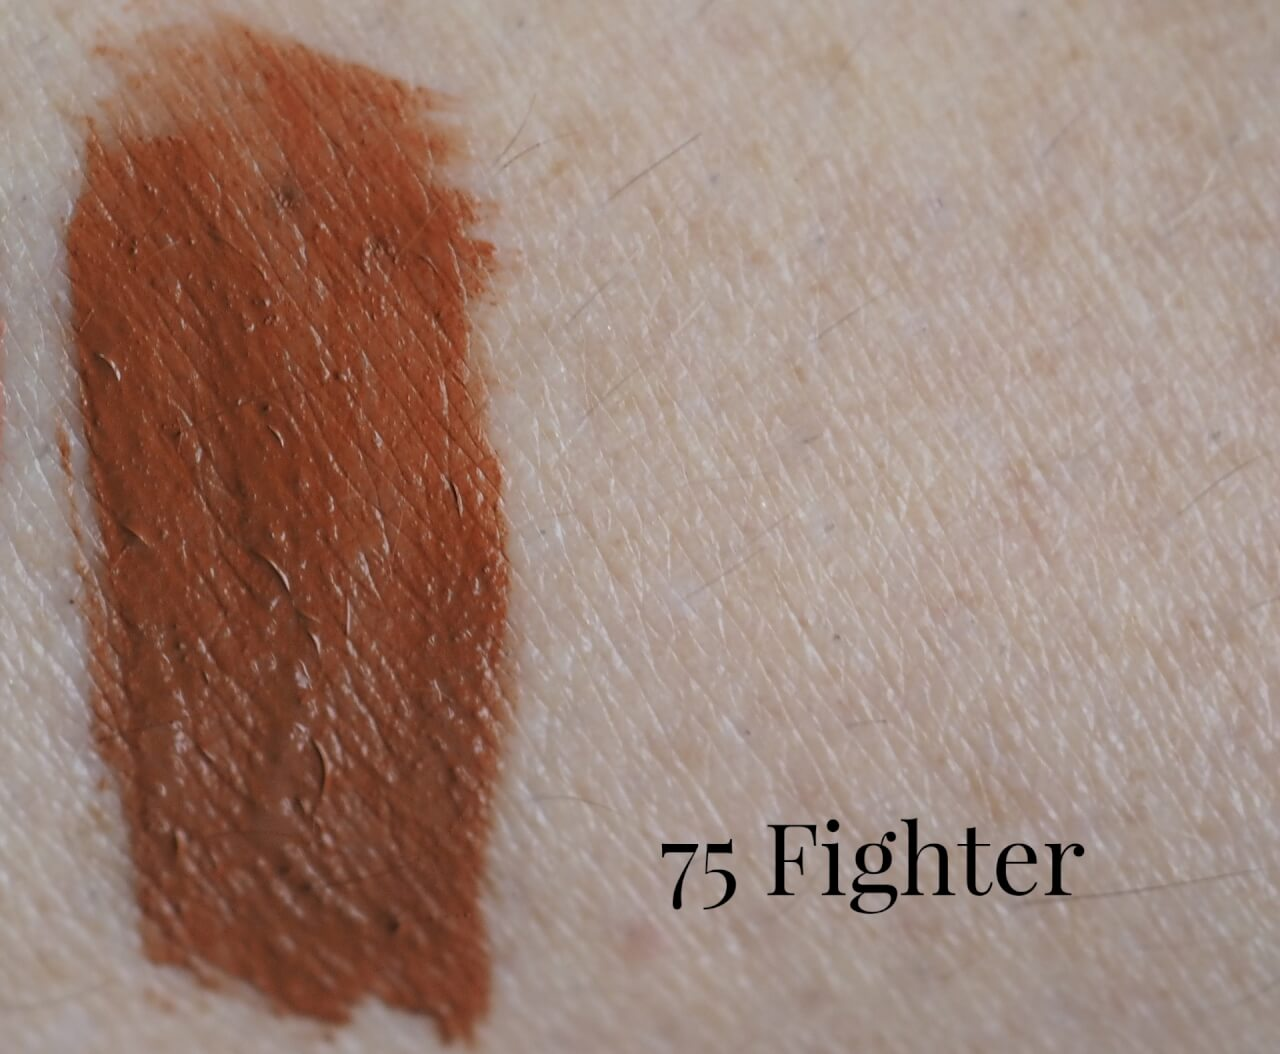 75 Fighter Super Stay Matte Ink